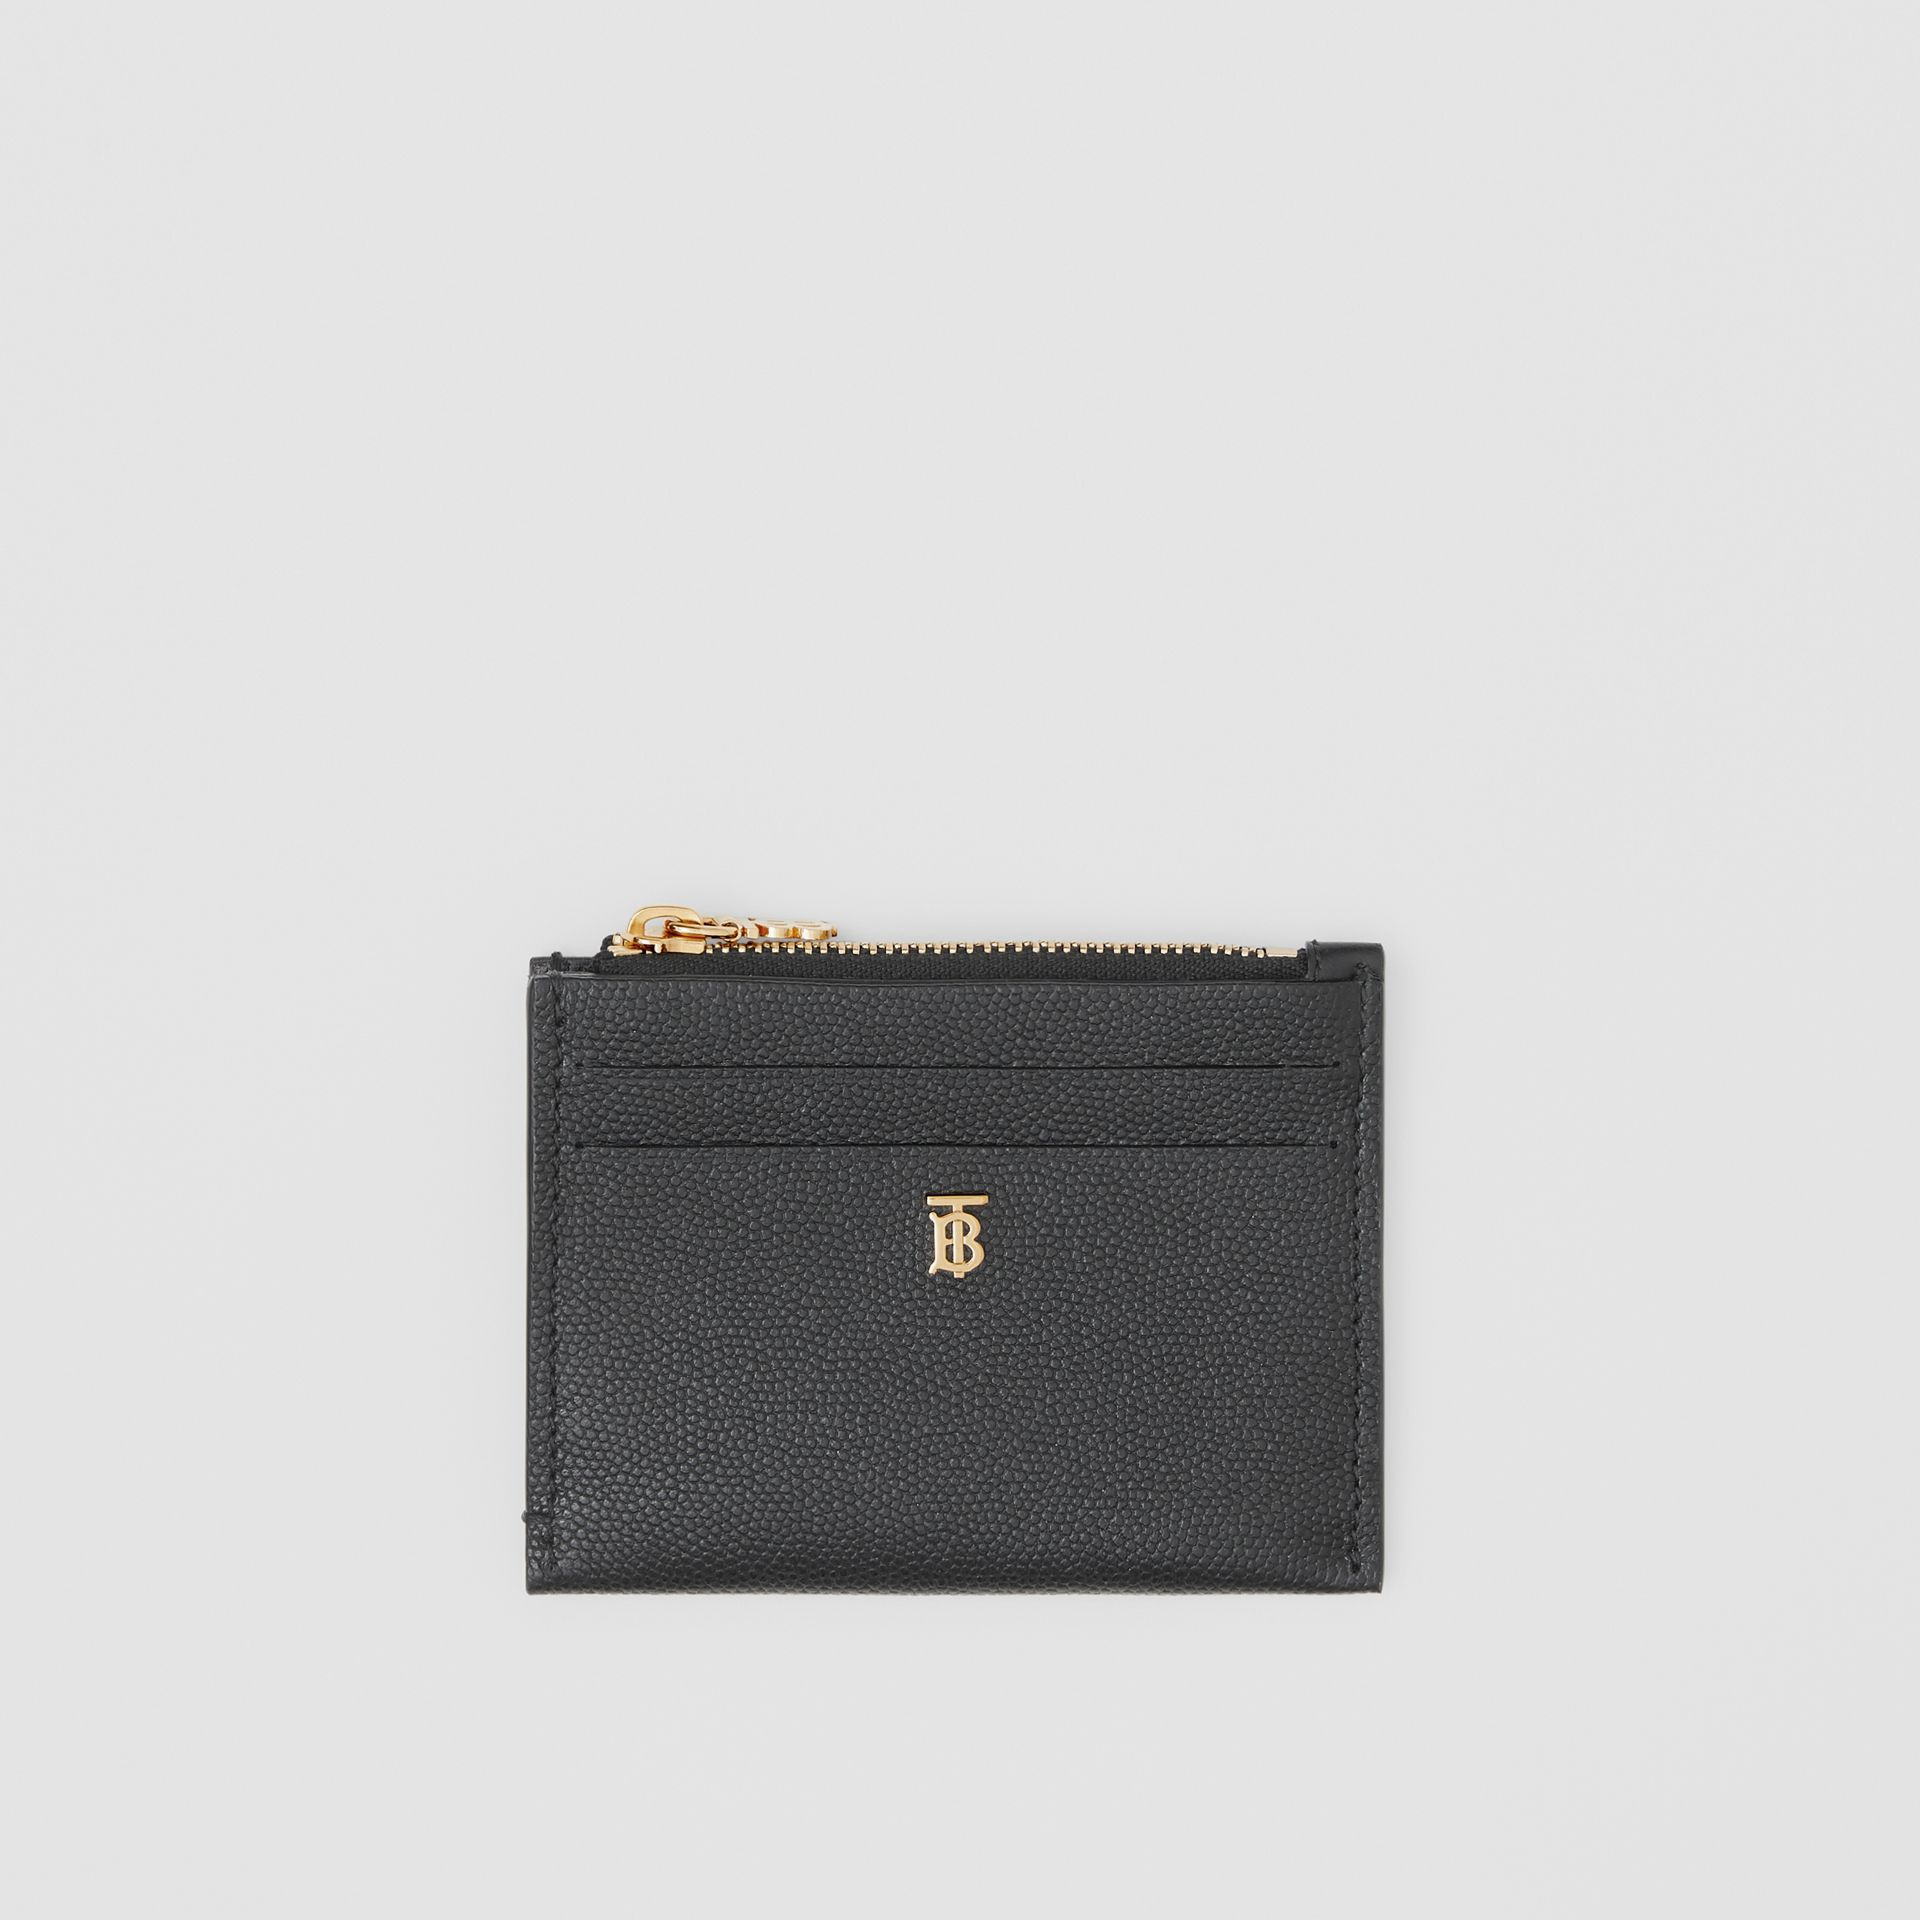 Monogram Motif Grainy Leather Zip Card Case in Black - Women | Burberry - gallery image 0